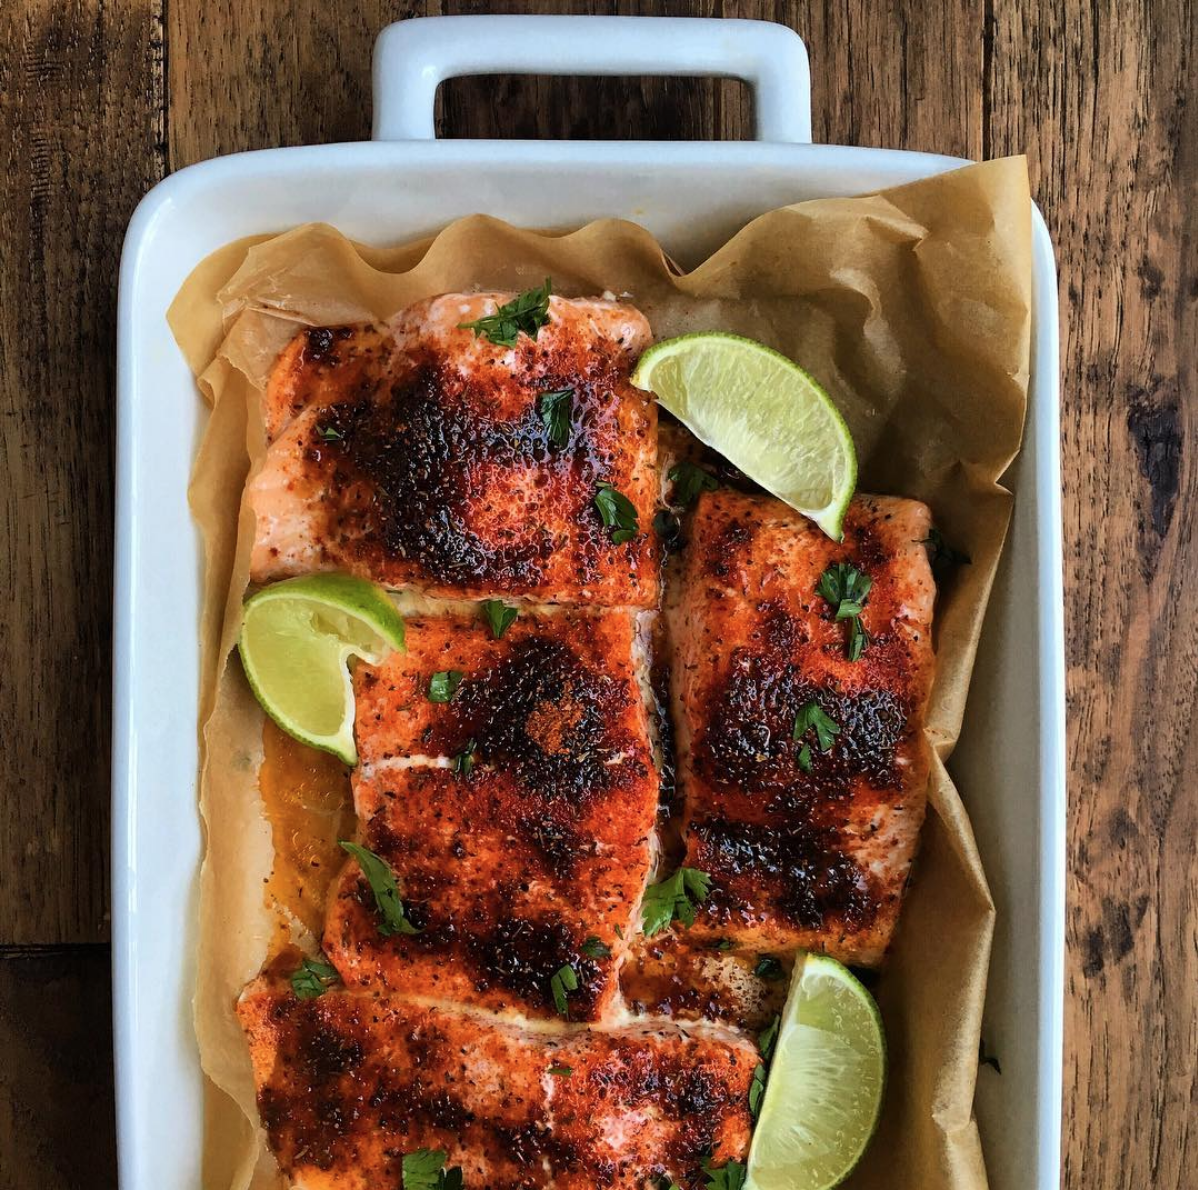 Oven-baked salmon in a white baking dish with lime wedges.